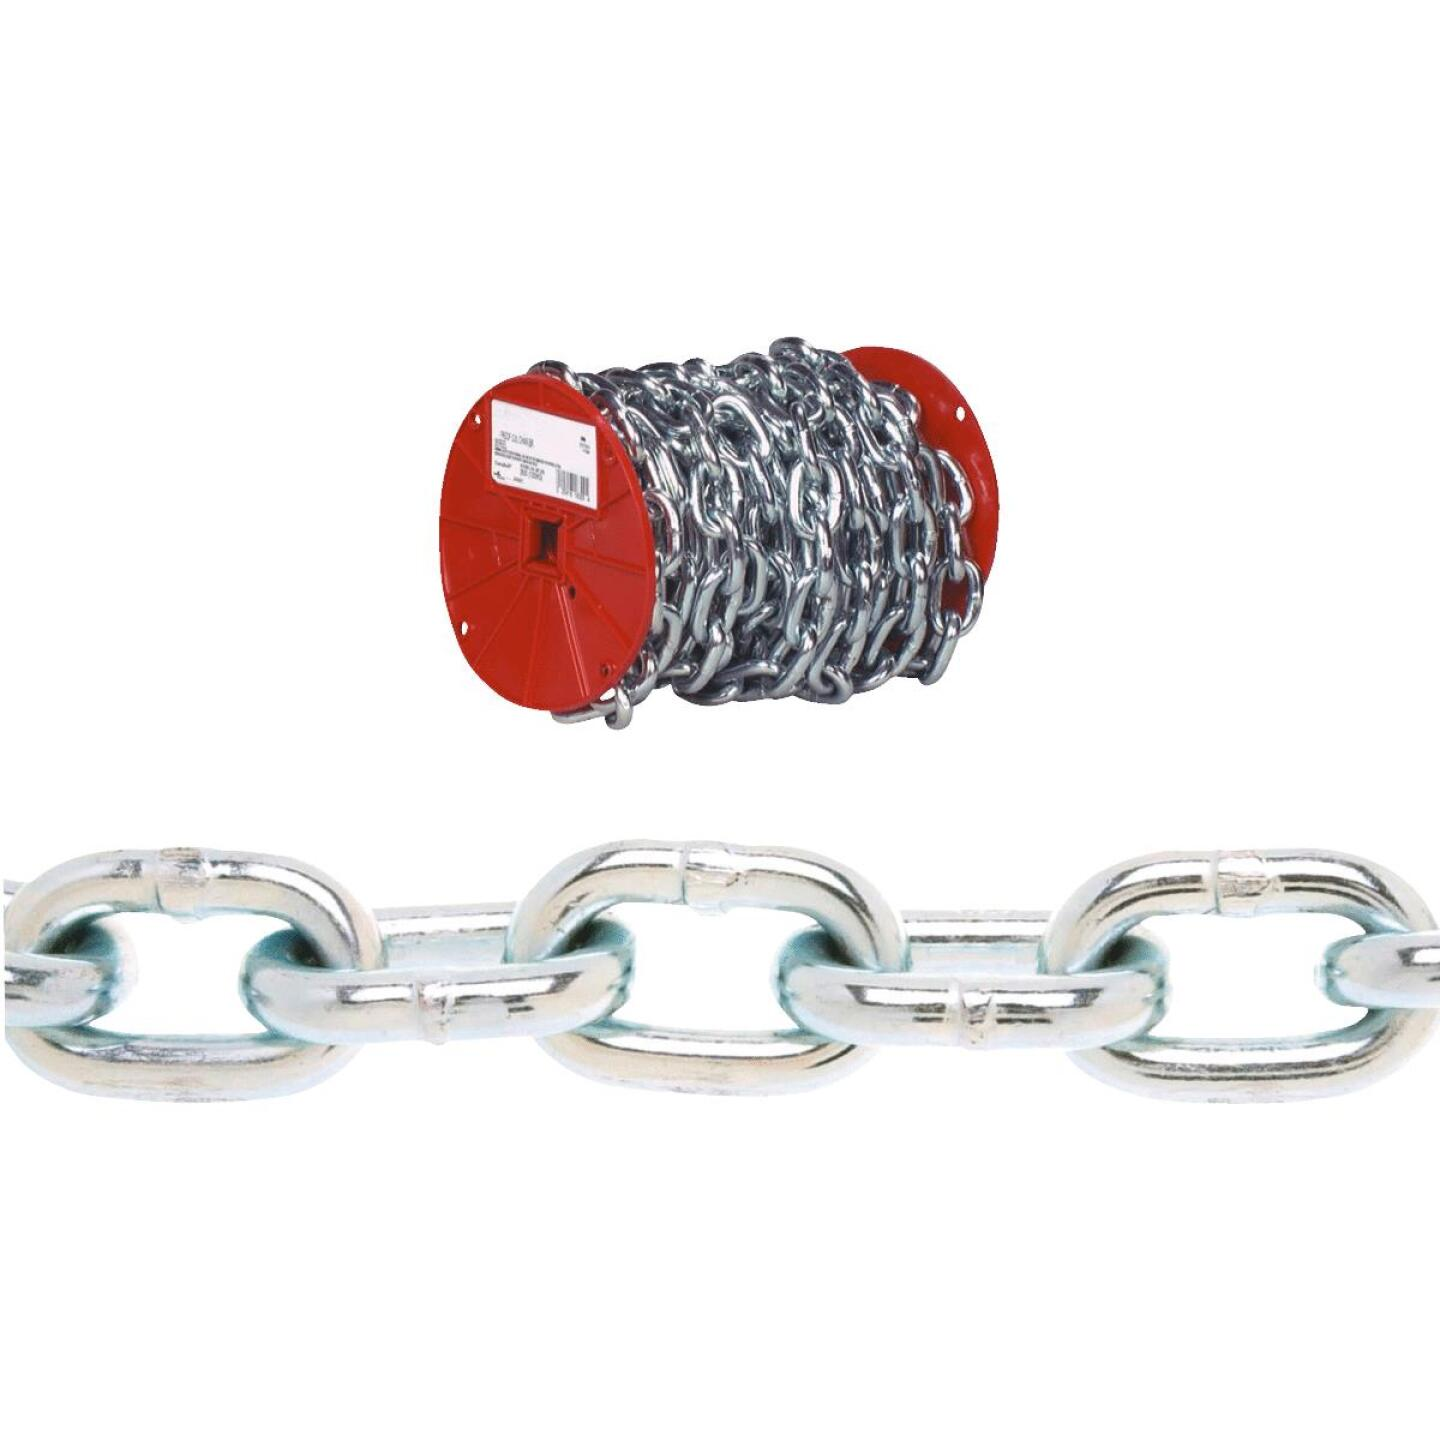 Campbell 1/4 In. 65 Ft. Zinc-Plated Low-Carbon Steel Coil Chain Image 1